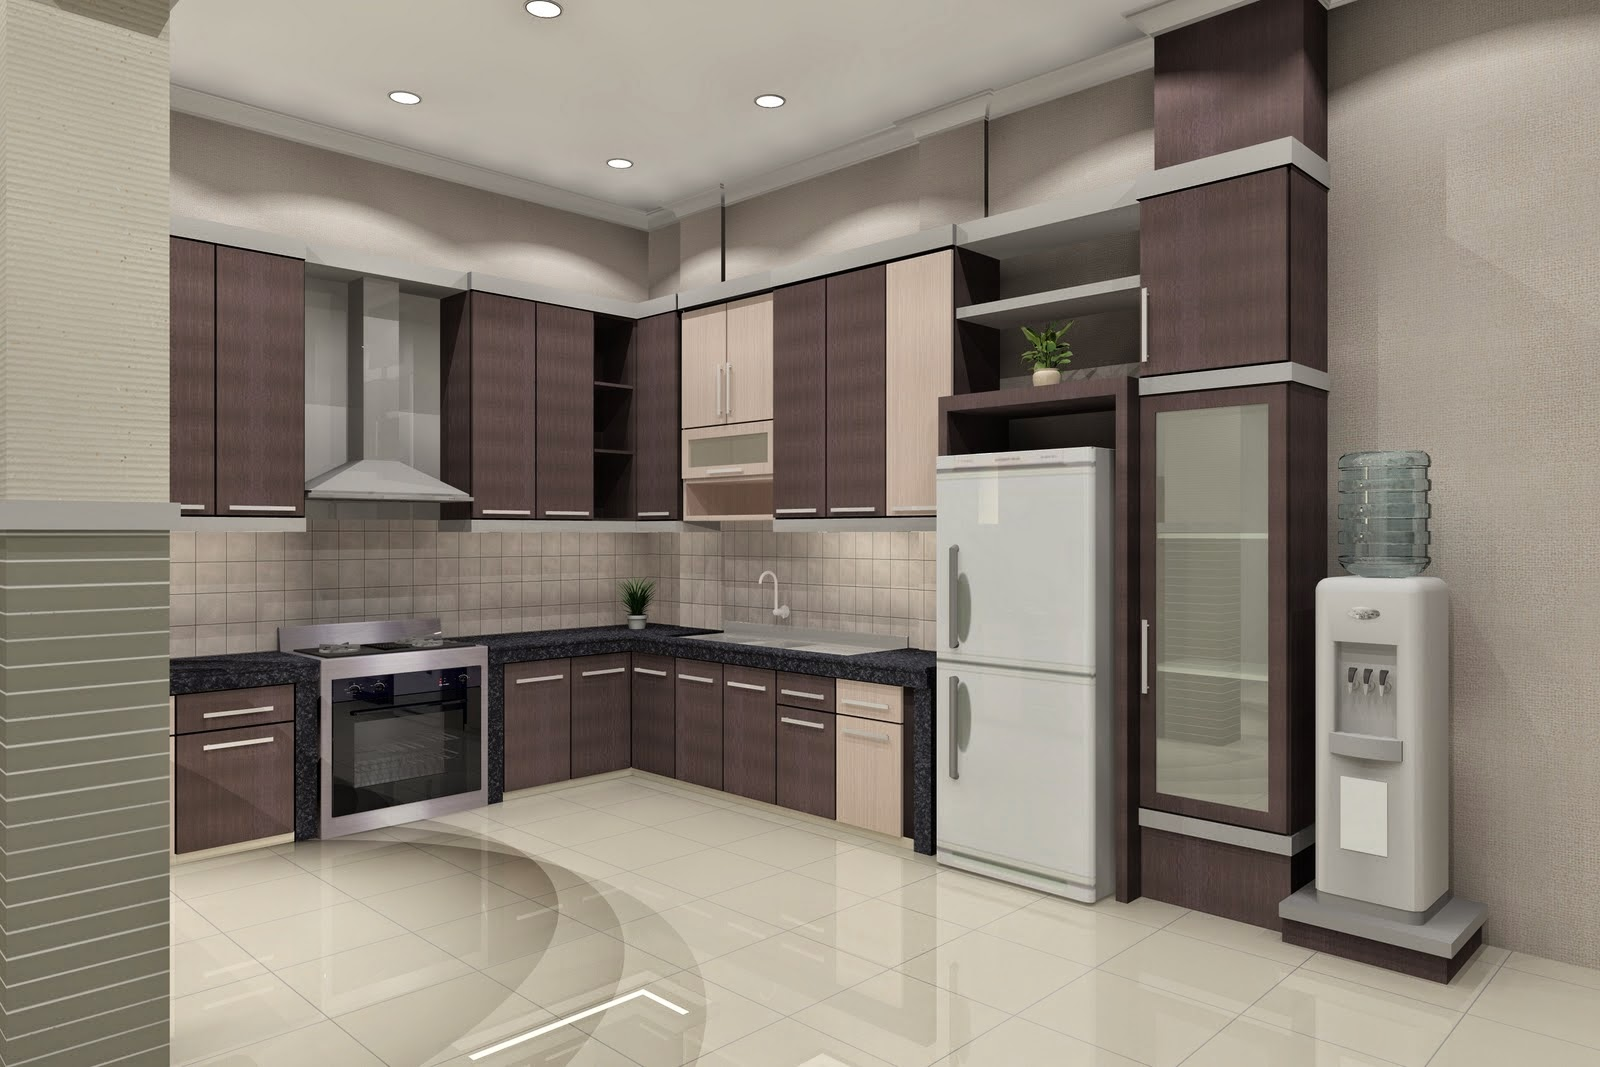 simple minimalist kitchen design 2015 home design ideas 2015